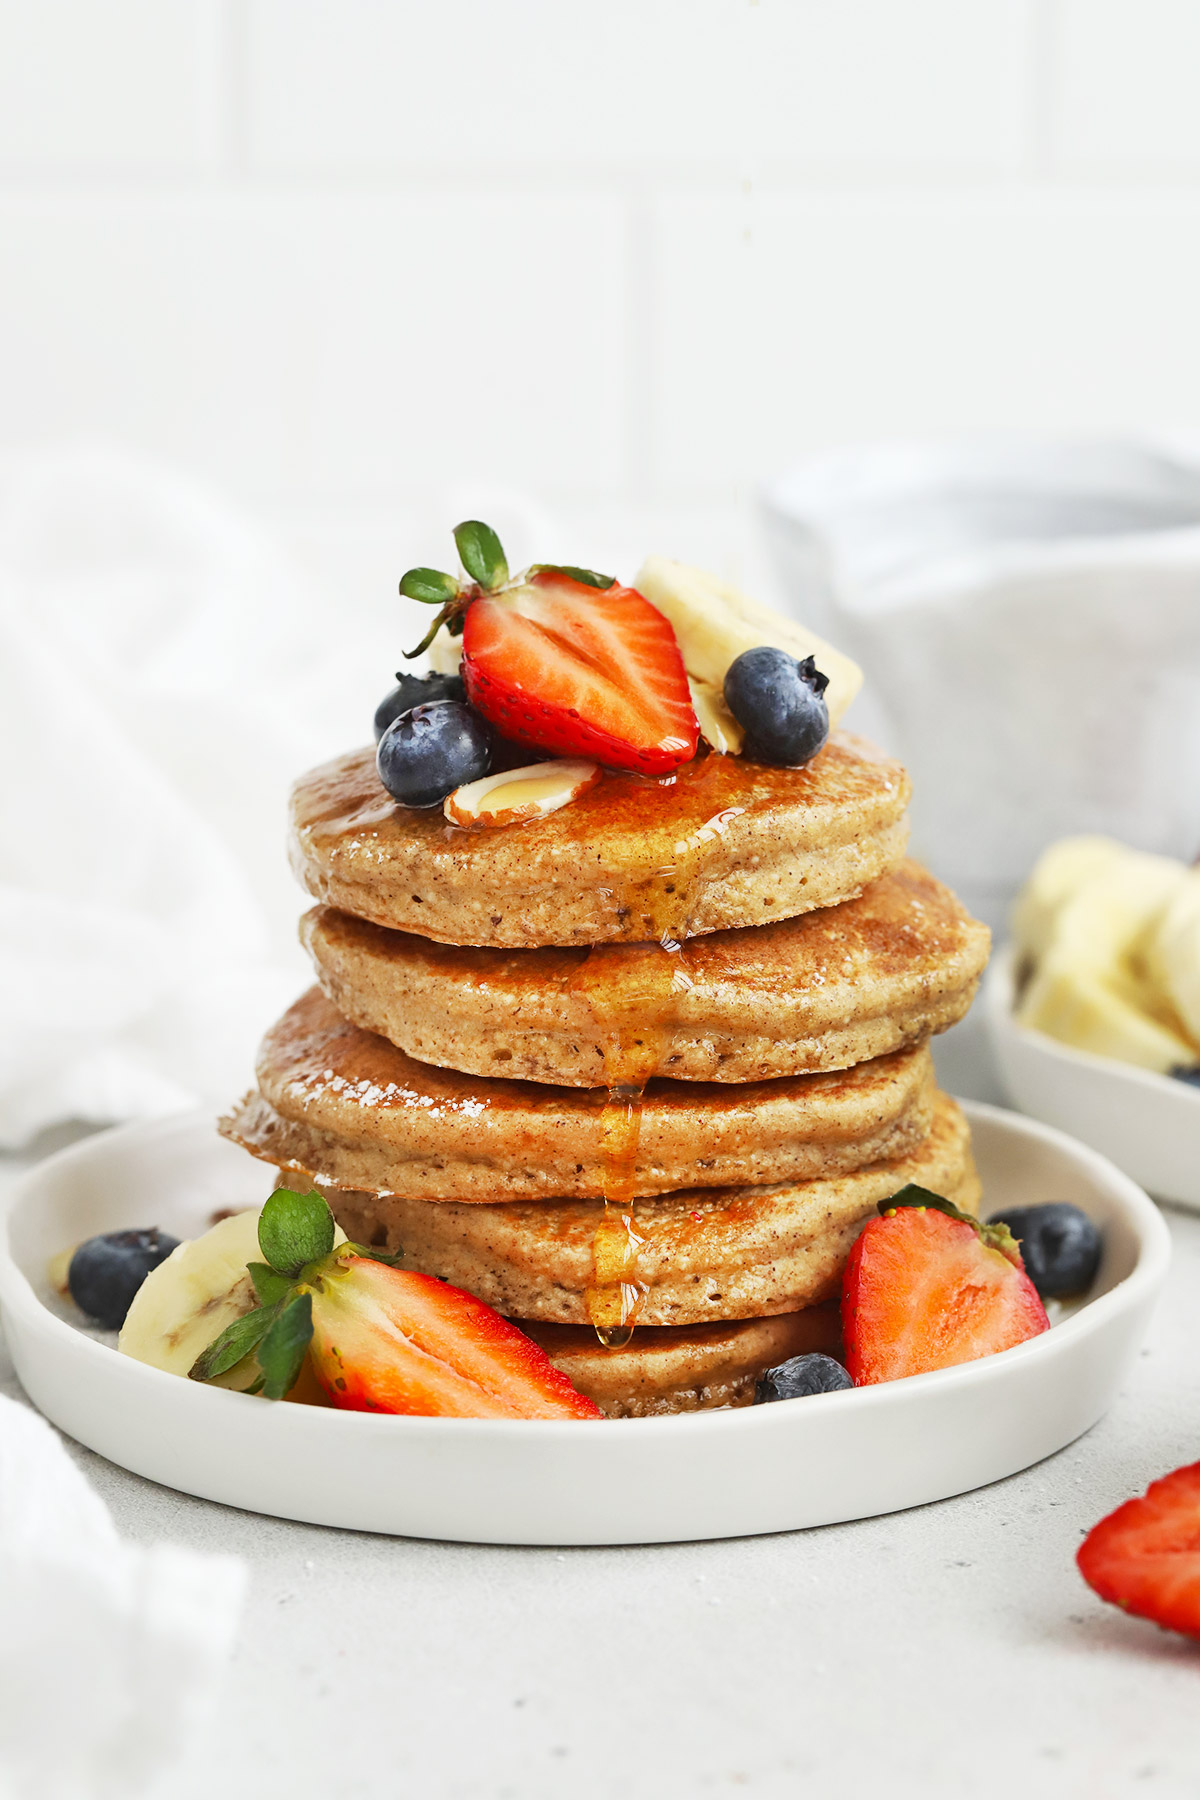 Front view of a stack of blender banana oatmeal pancakes topped with sliced bananas, fresh berries, and syrup.